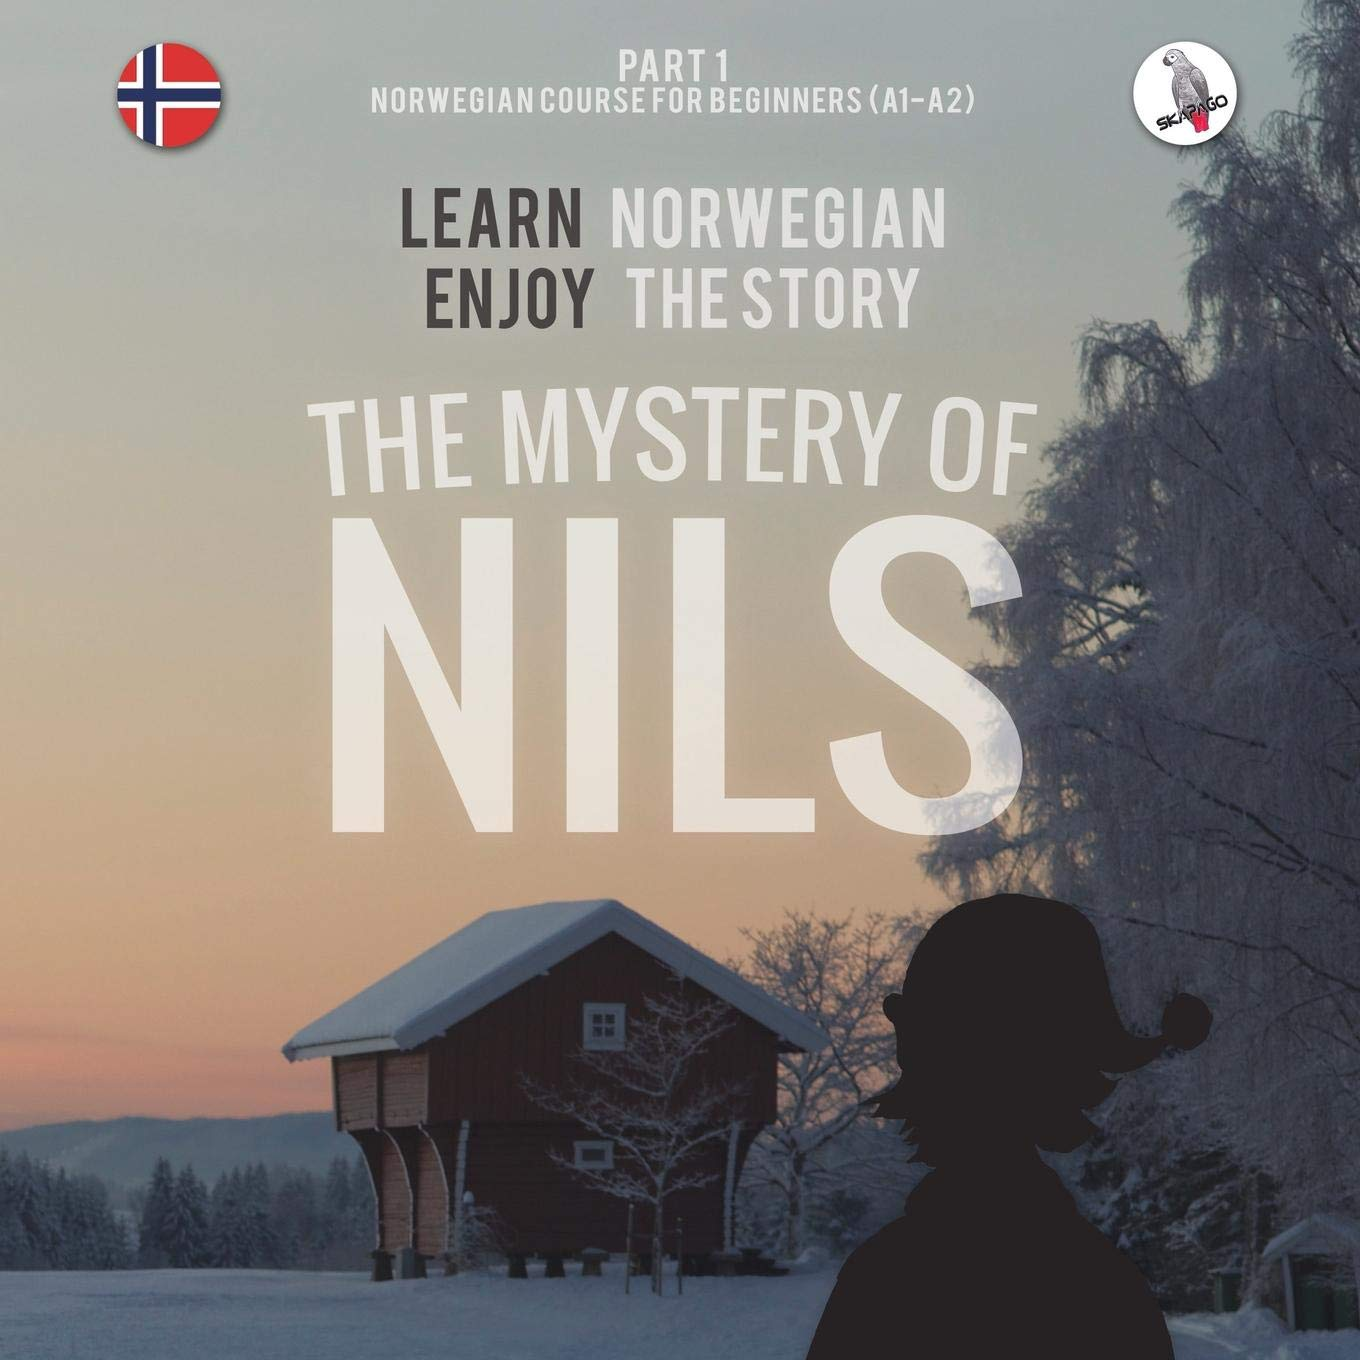 The Mystery Of Nils. Part 1   Norwegian Course For Beginners. Learn Norwegian   Enjoy The Story.